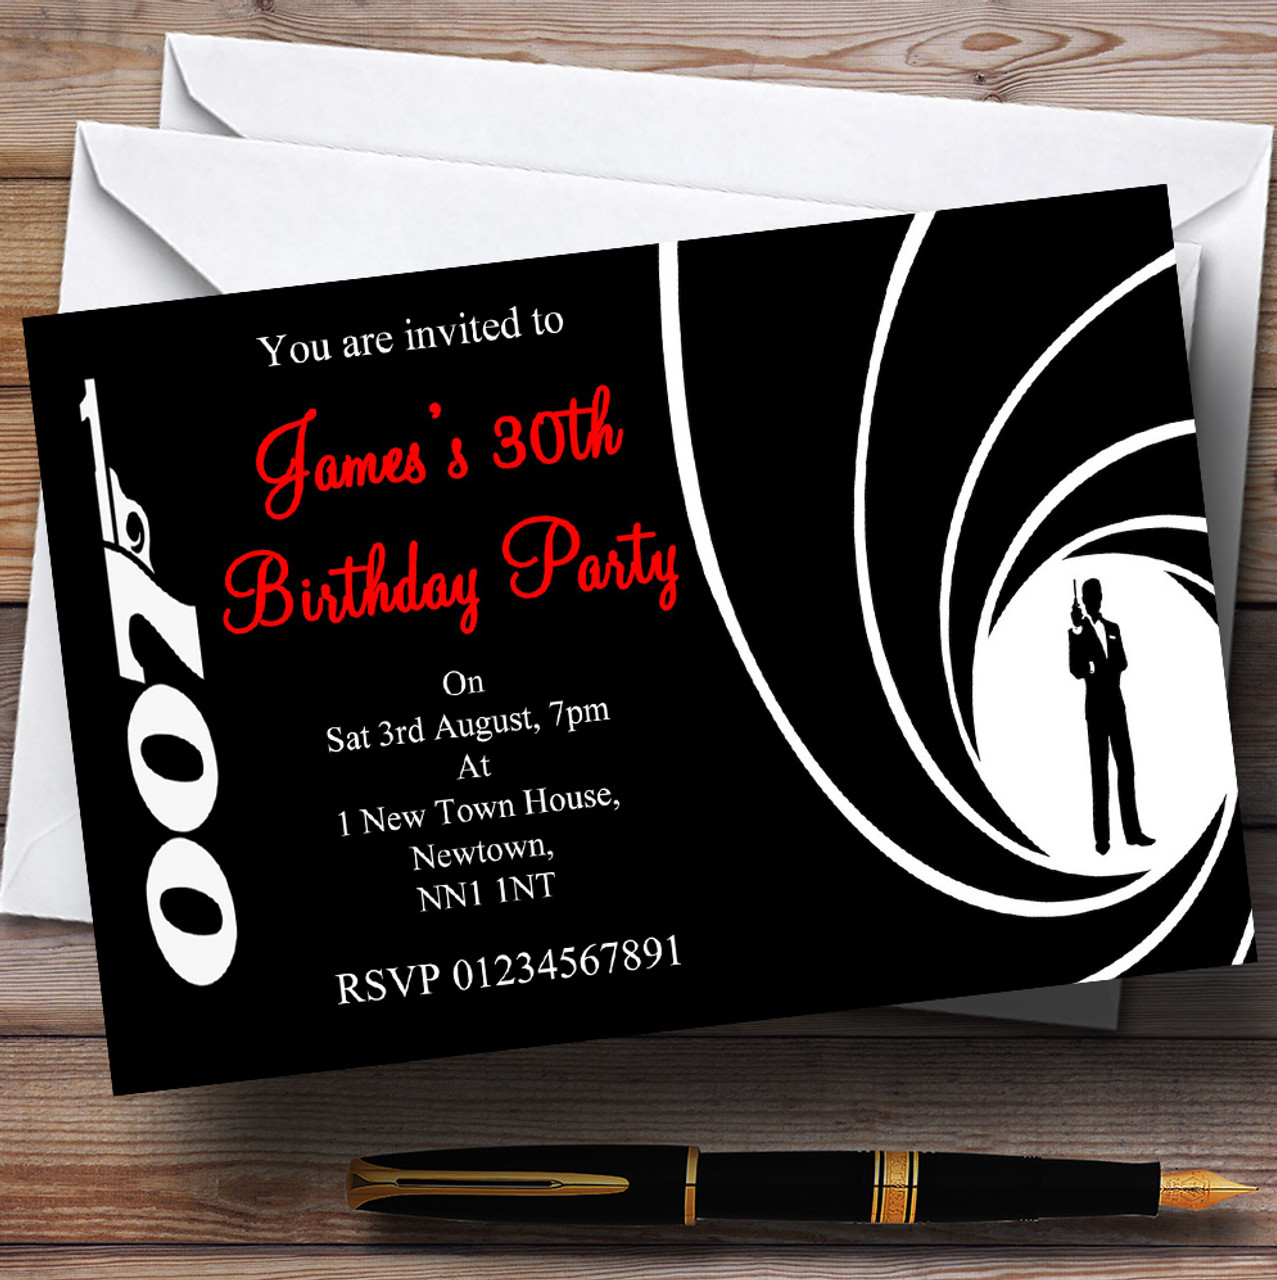 James Bond Personalised Party Invitations The Card Zoo – James Bond Birthday Cards